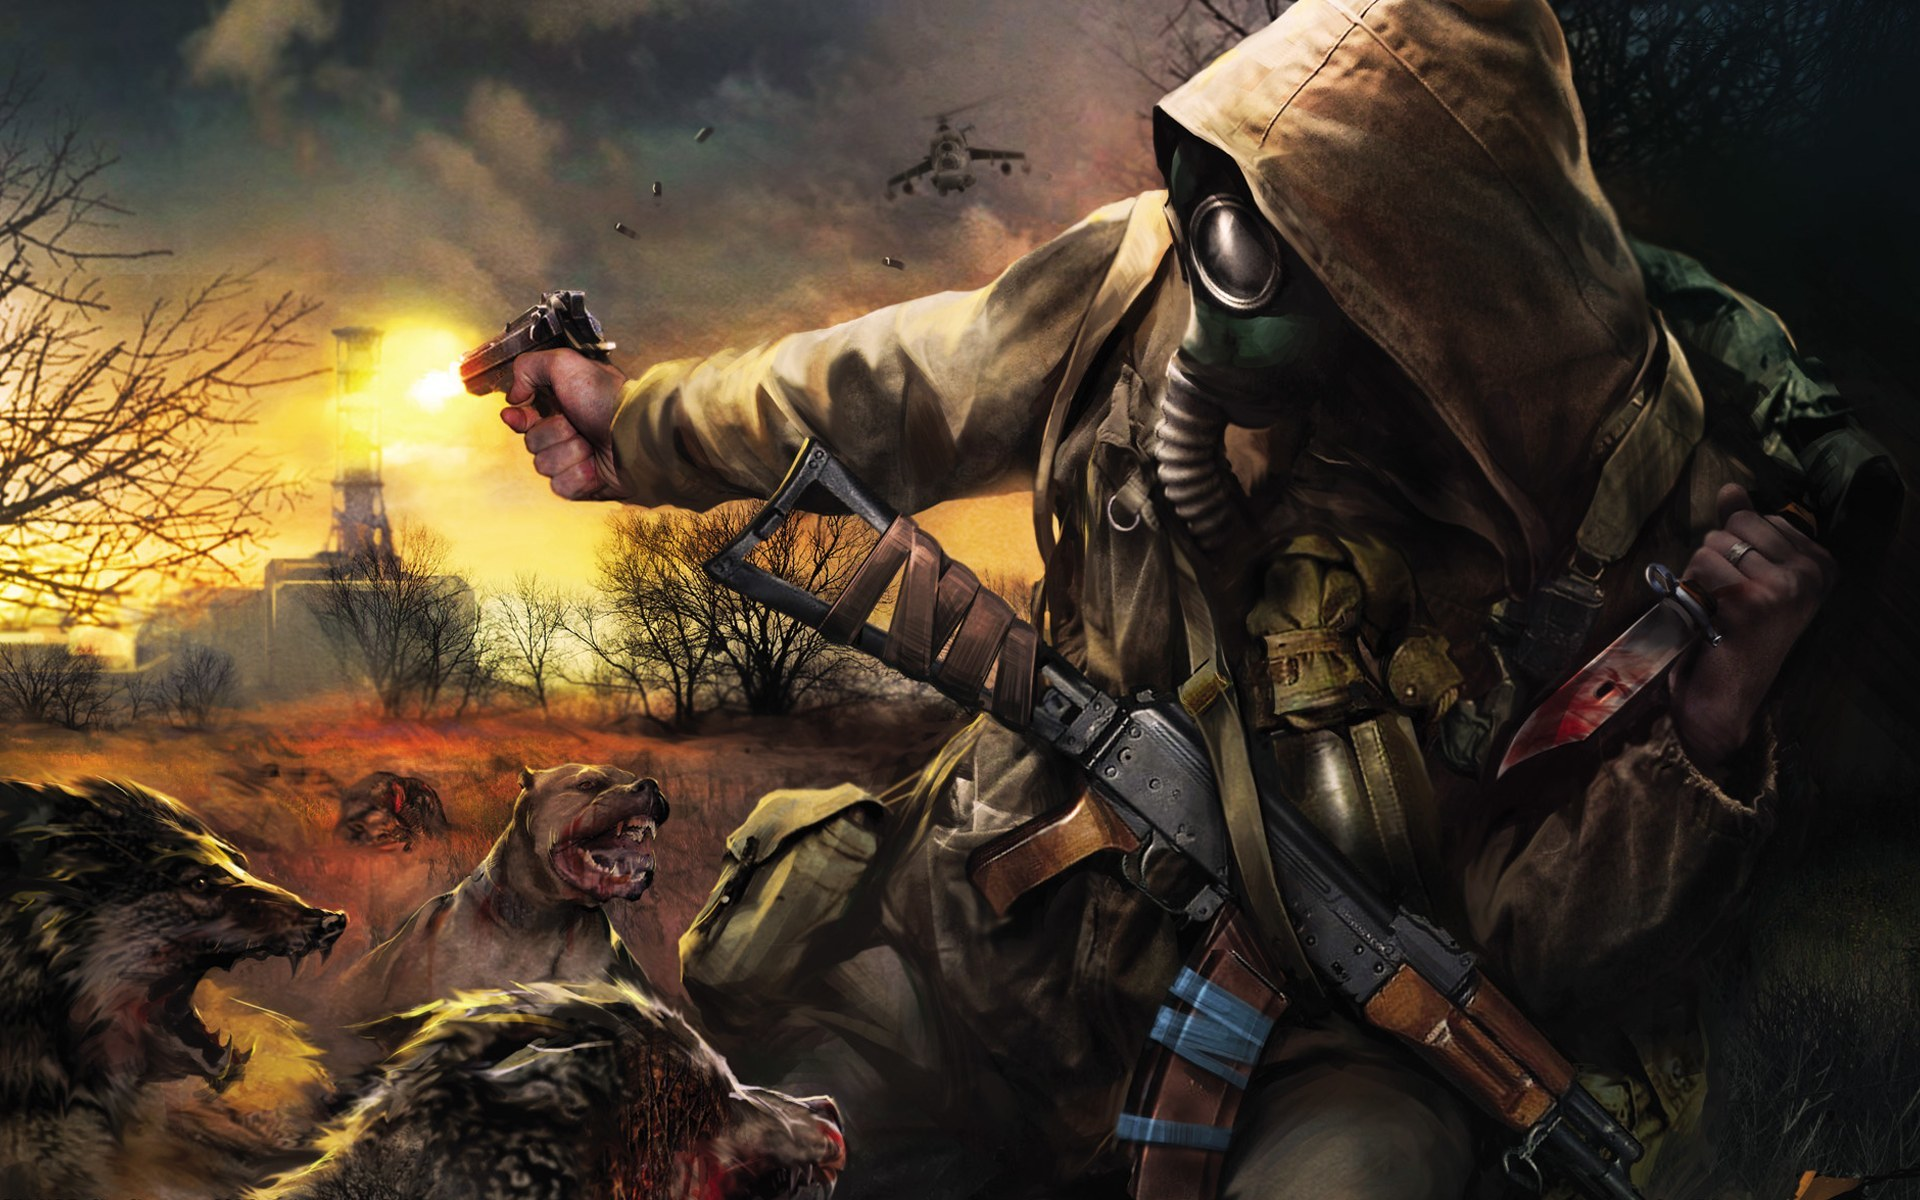 video games S.T.A.L.K.E.R. blood HD Wallpaper